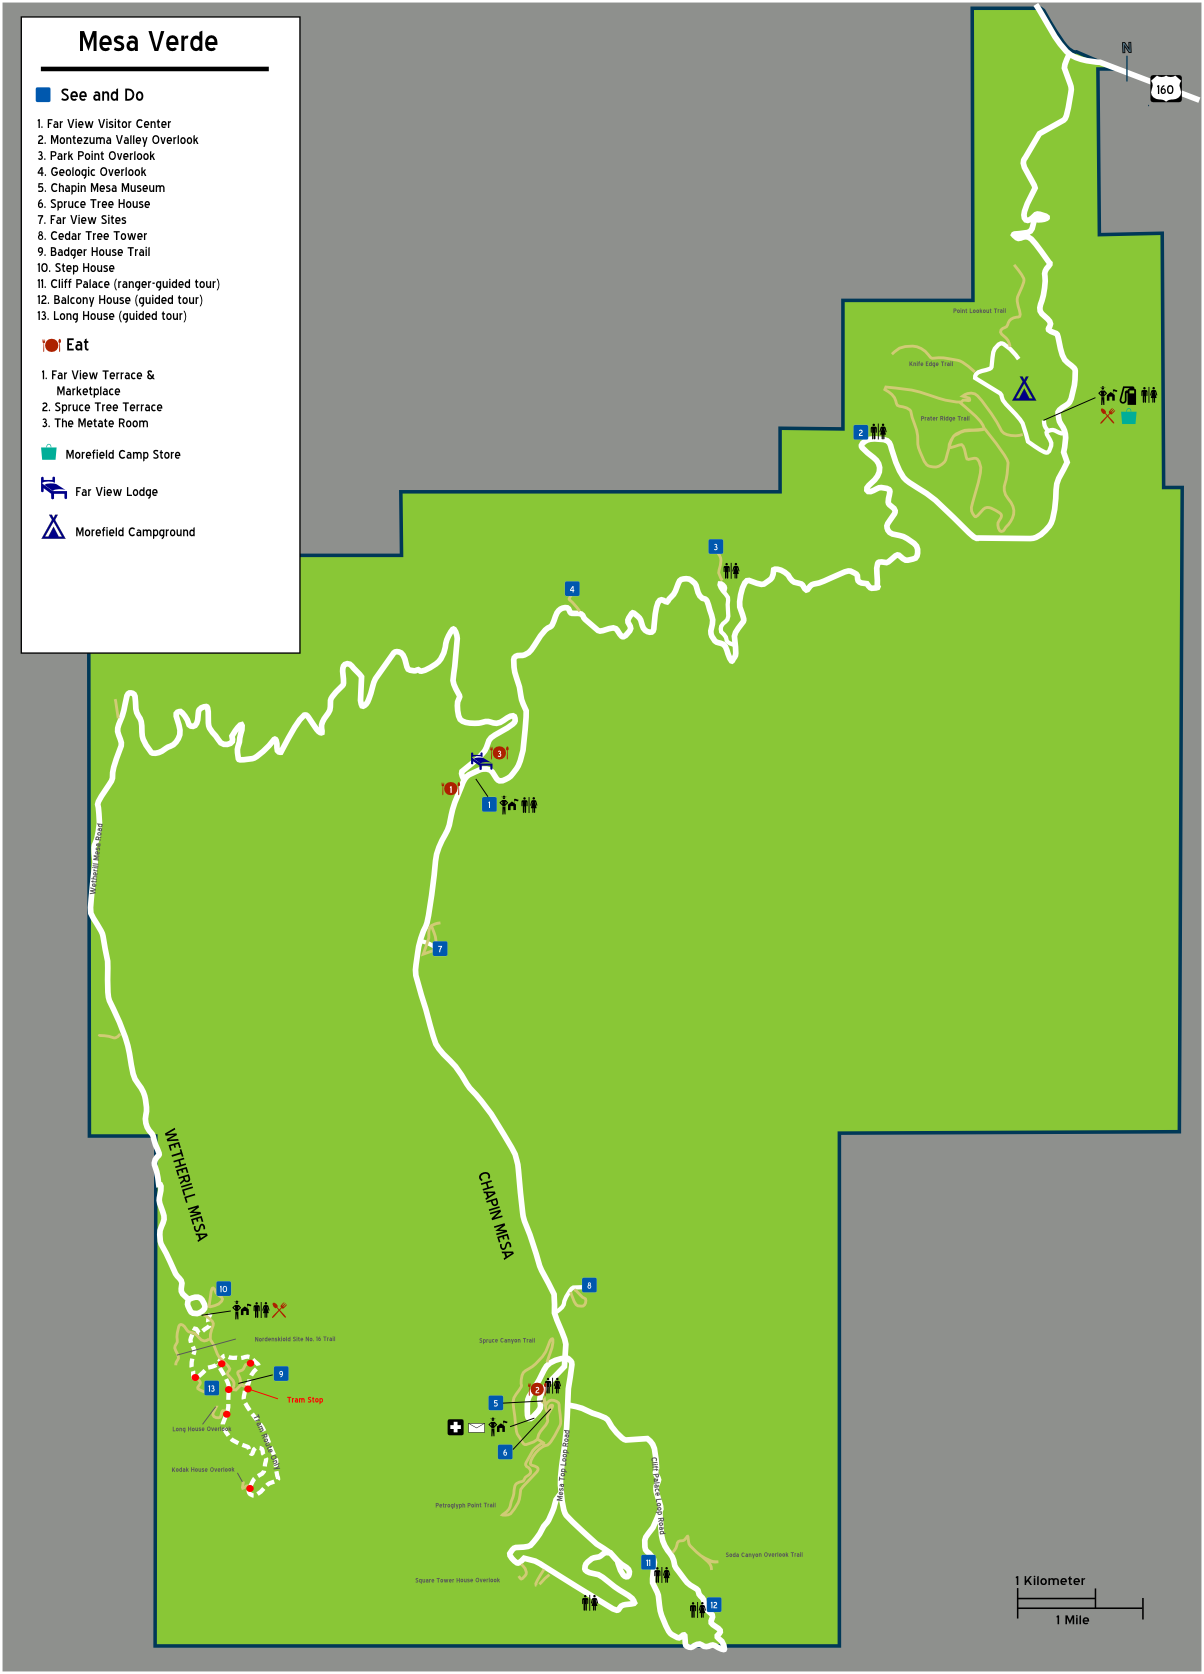 File:Mesa verde map.png - Wikimedia Commons